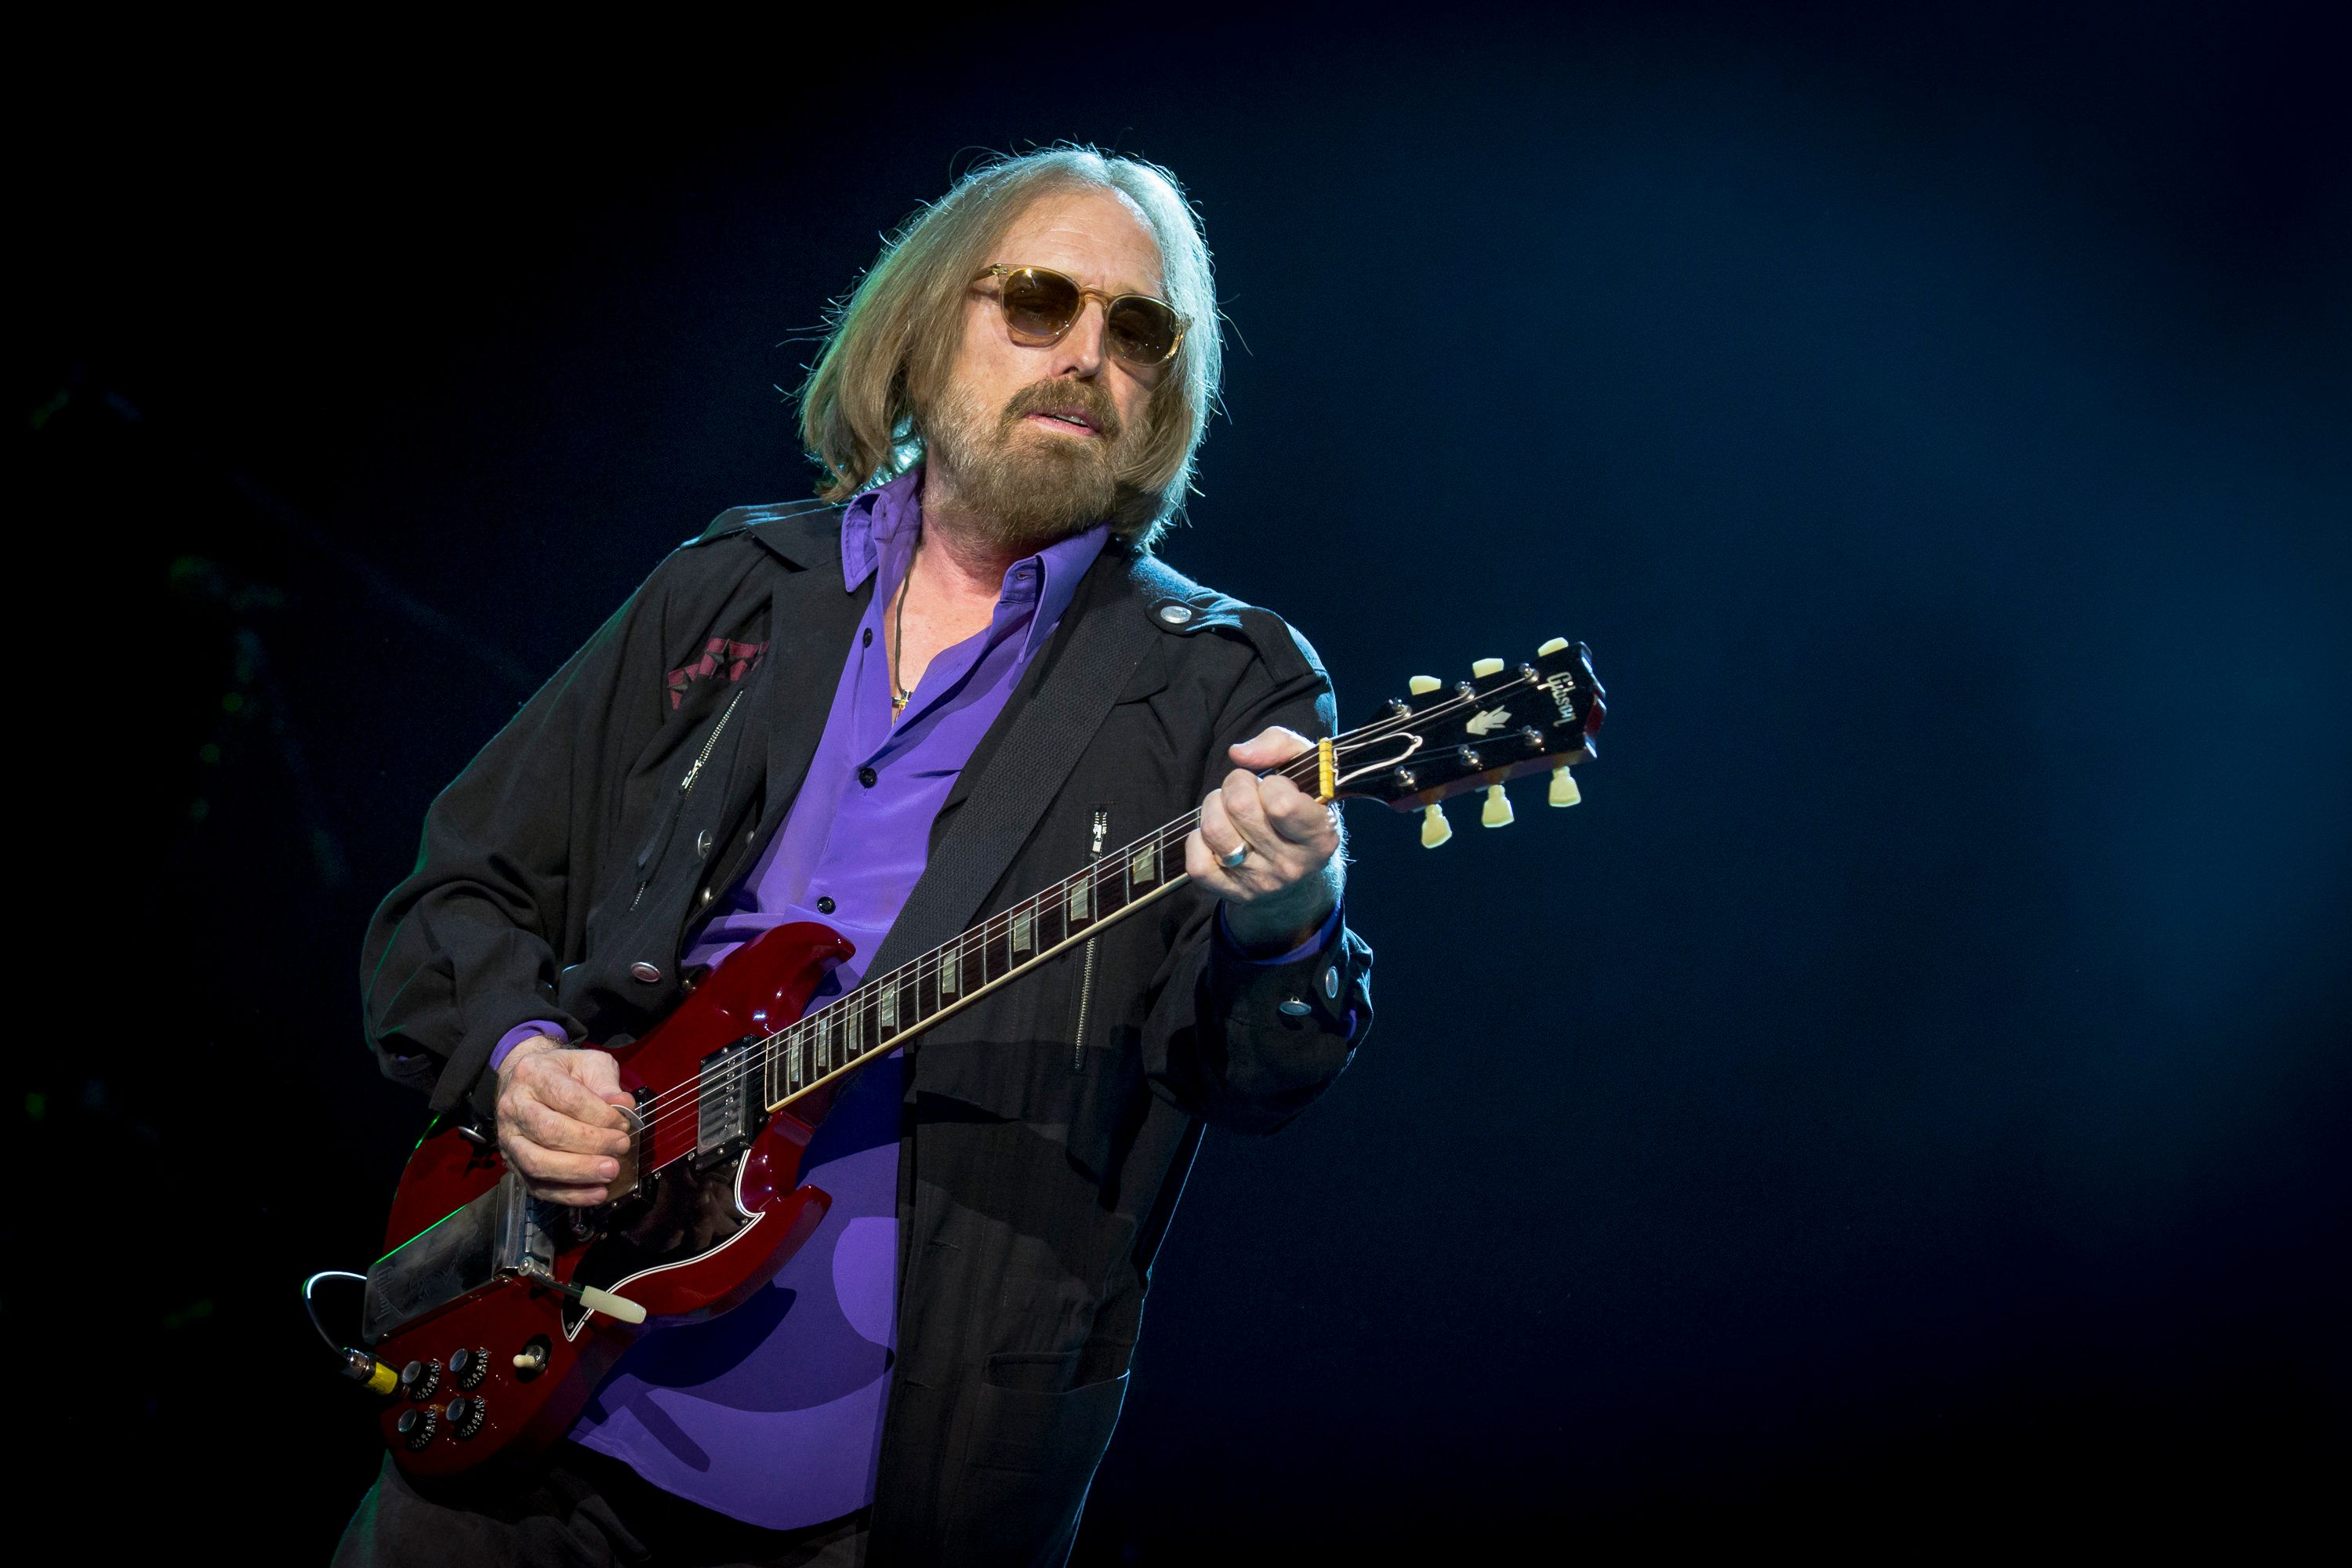 Many of feel like we knew Tom Petty personally